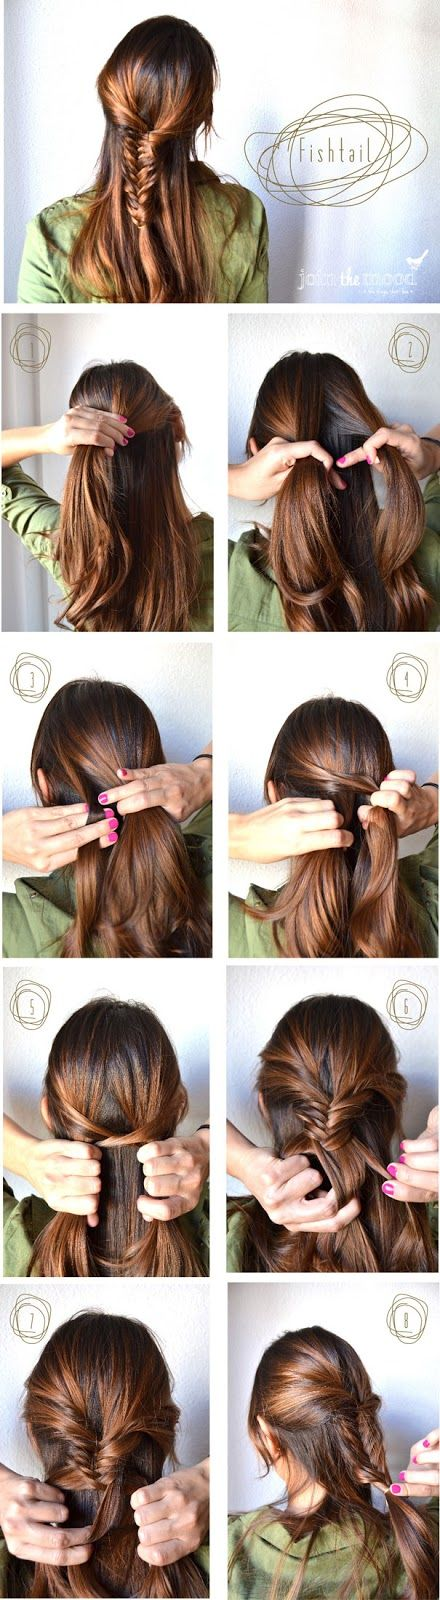 Make a Fishtail For Your Hair | hairstyles tutorial